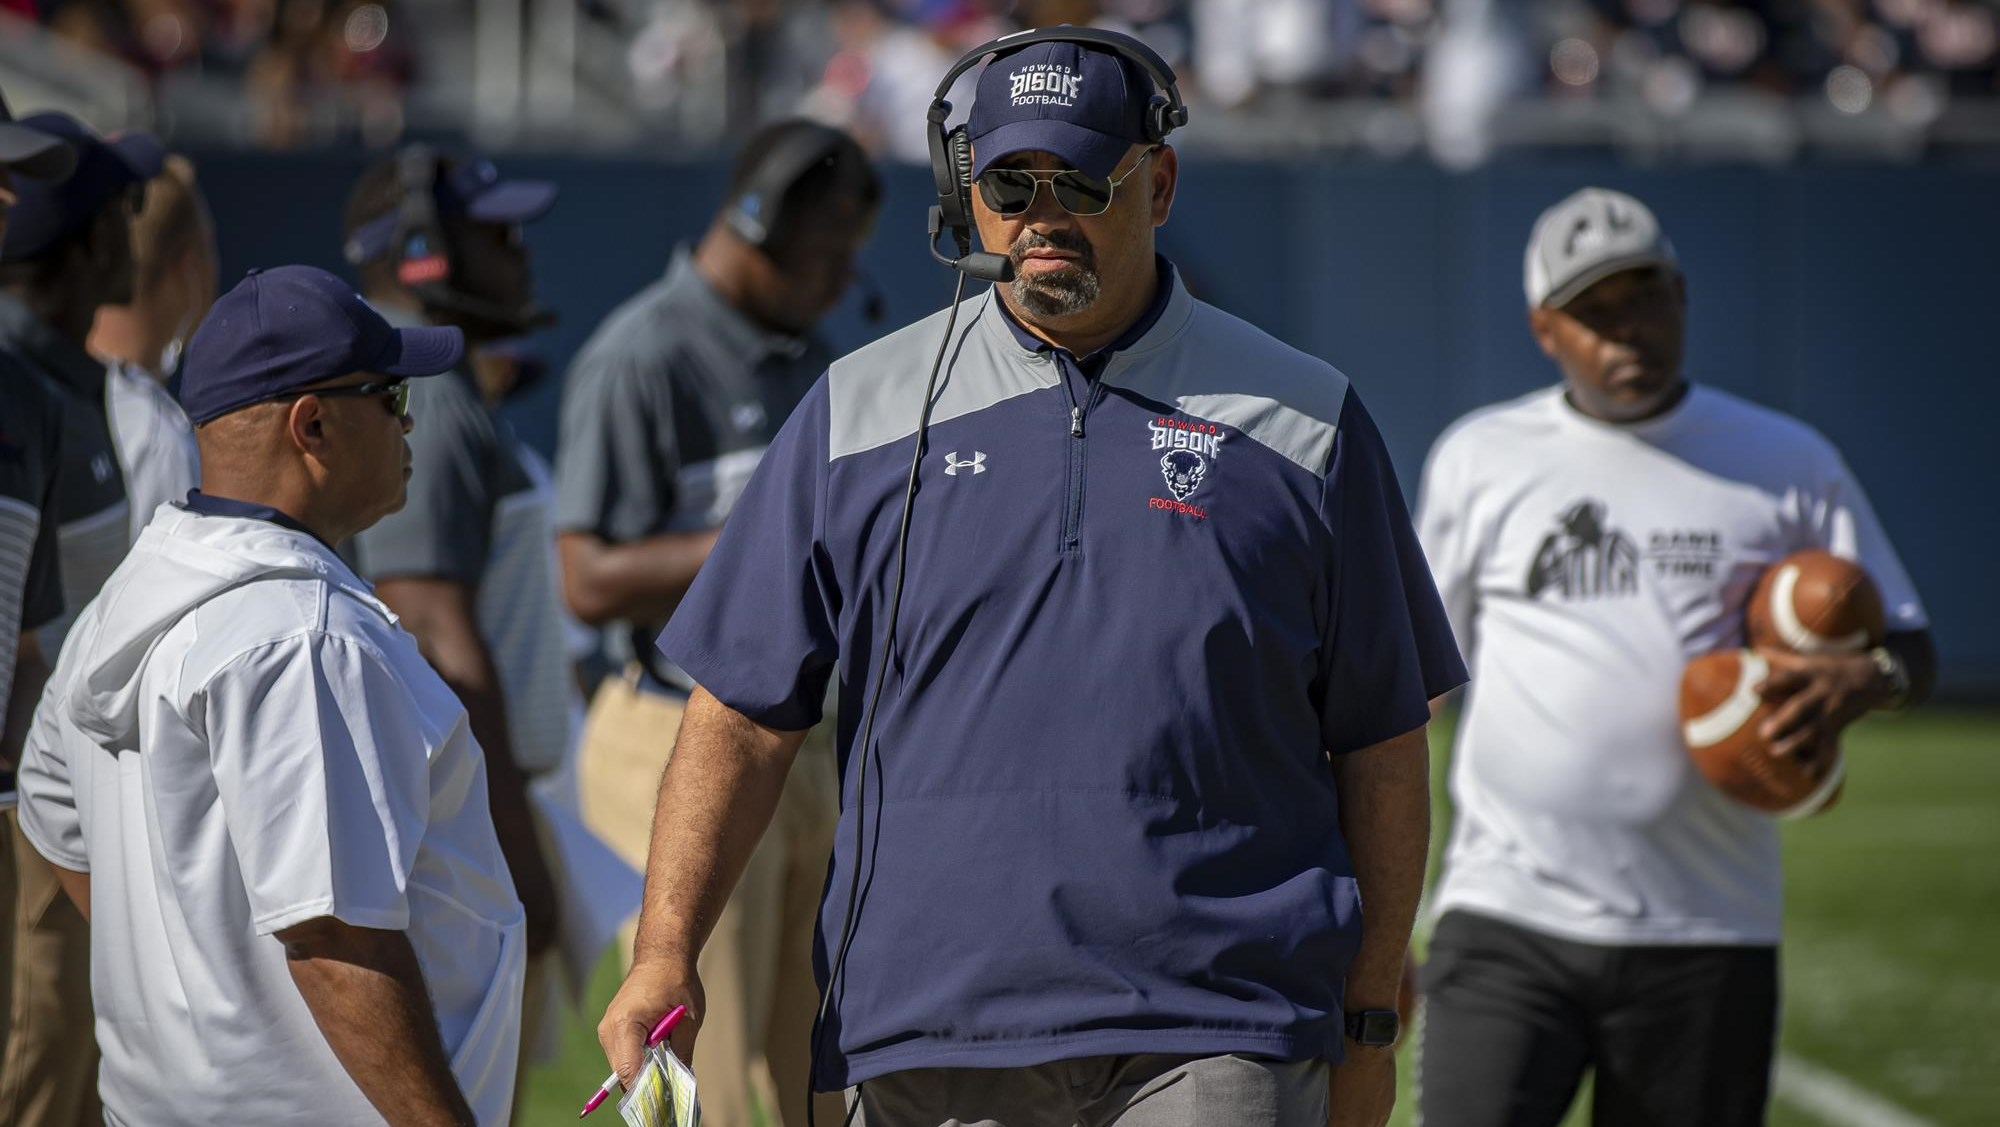 Howard Bison head football coach Ron Prince walking the sidelines during a 2019 College Football game